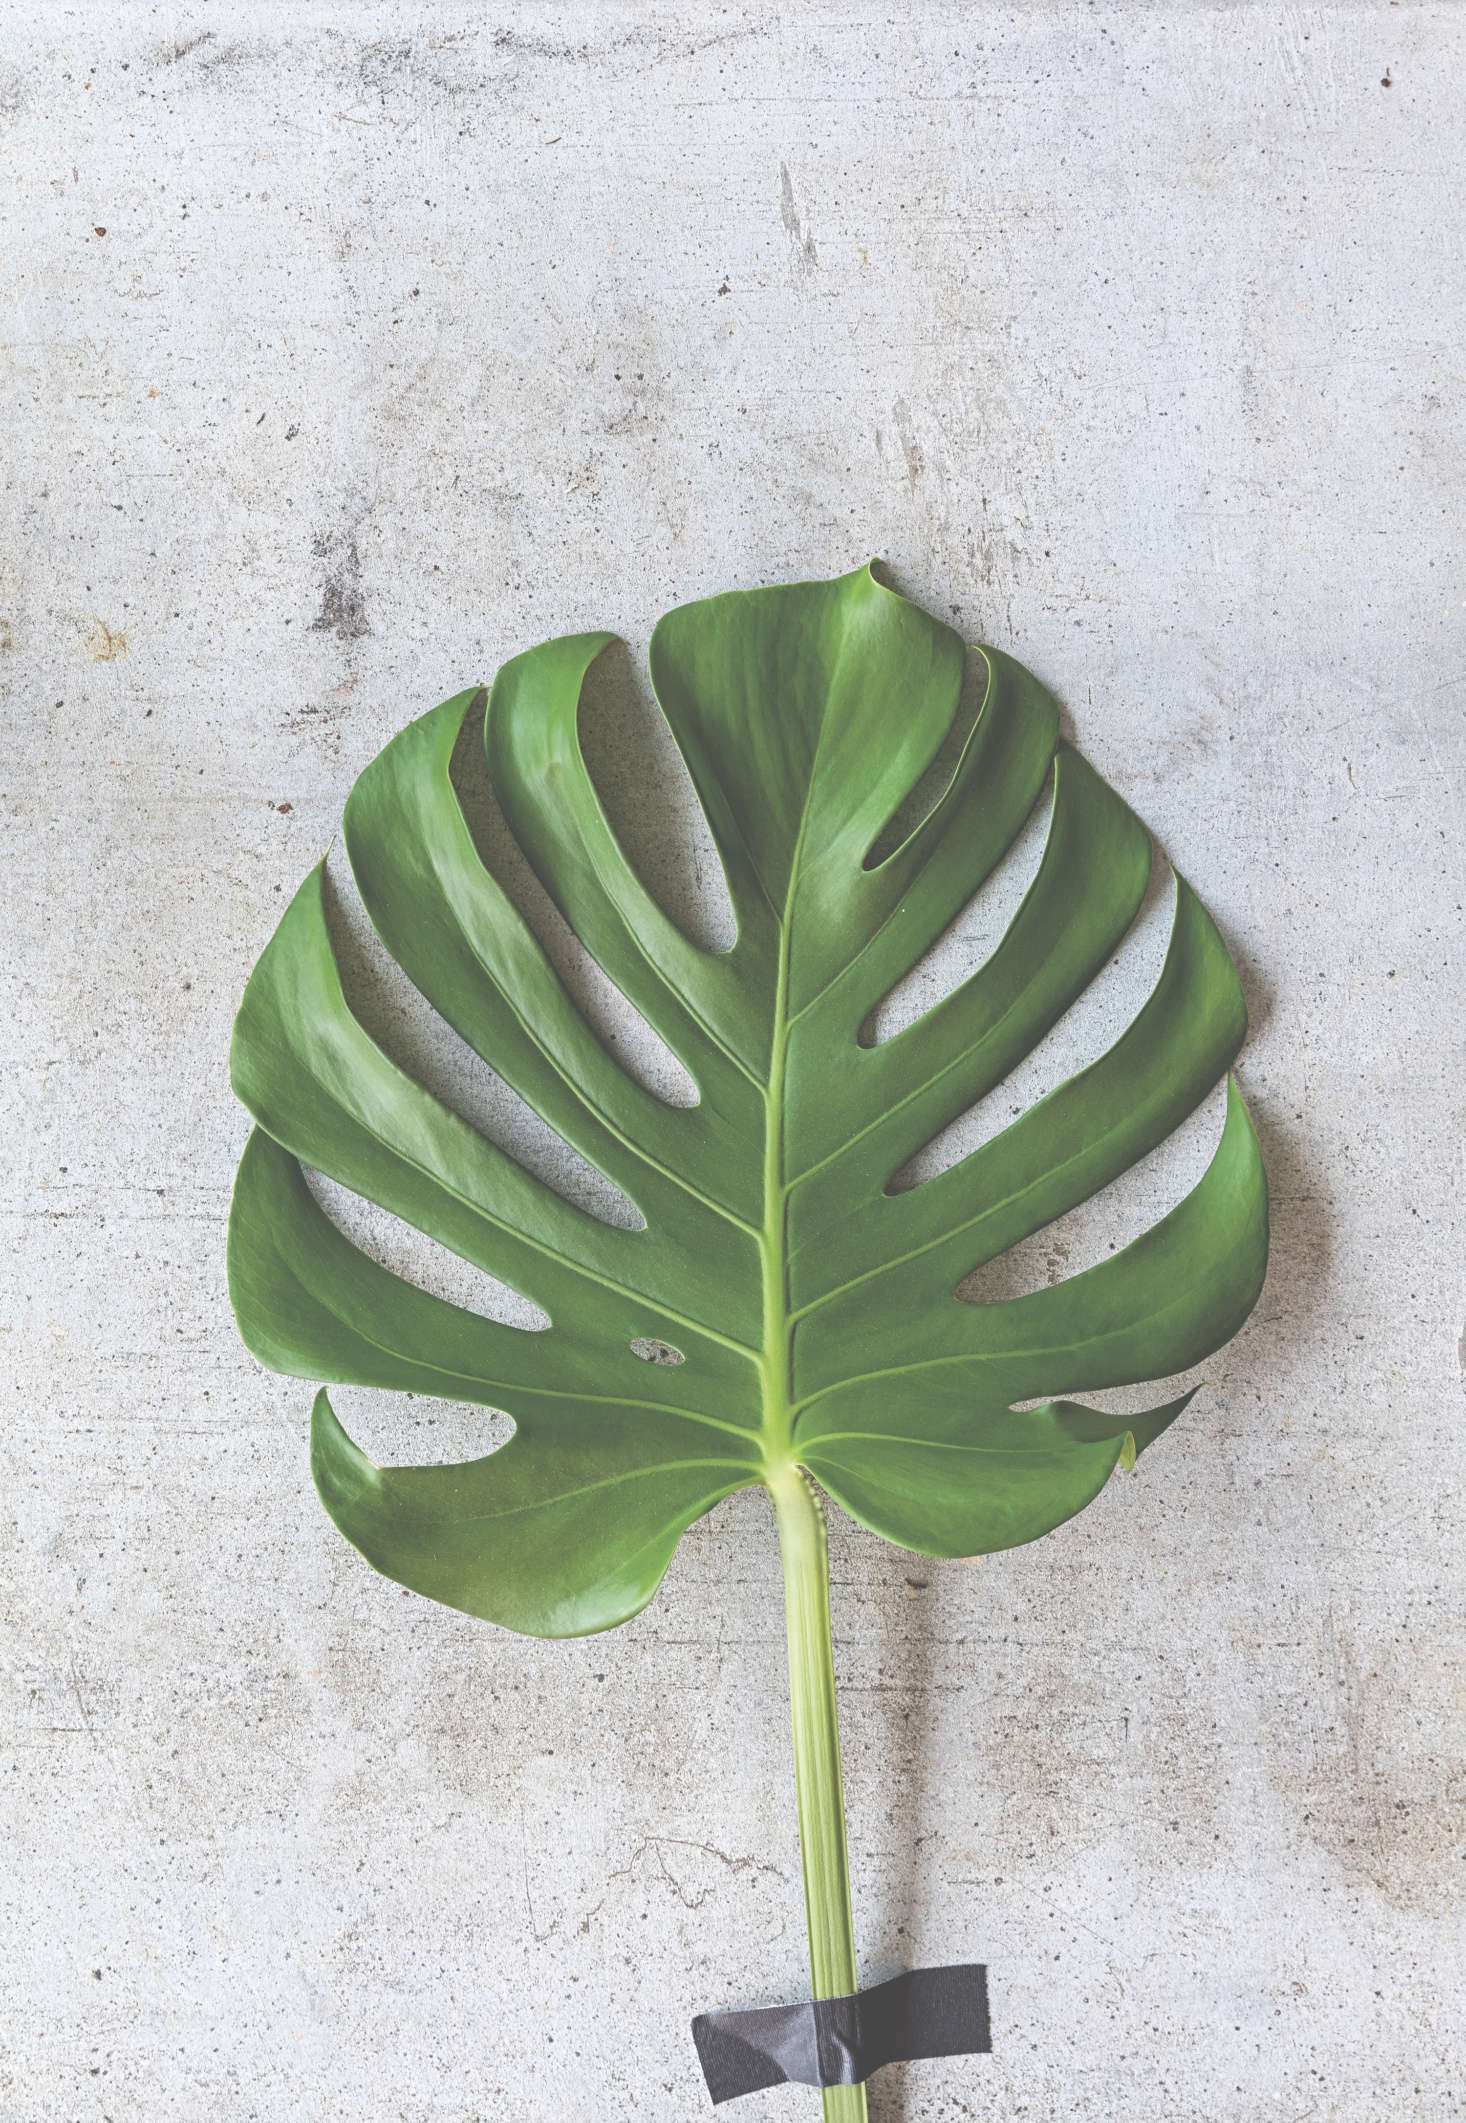 The glossy-leafed Monstera deliciosa is a vigorous plant that will grow rapidly almost anywhere; as such it needs nutrients, regular watering and lots of light.